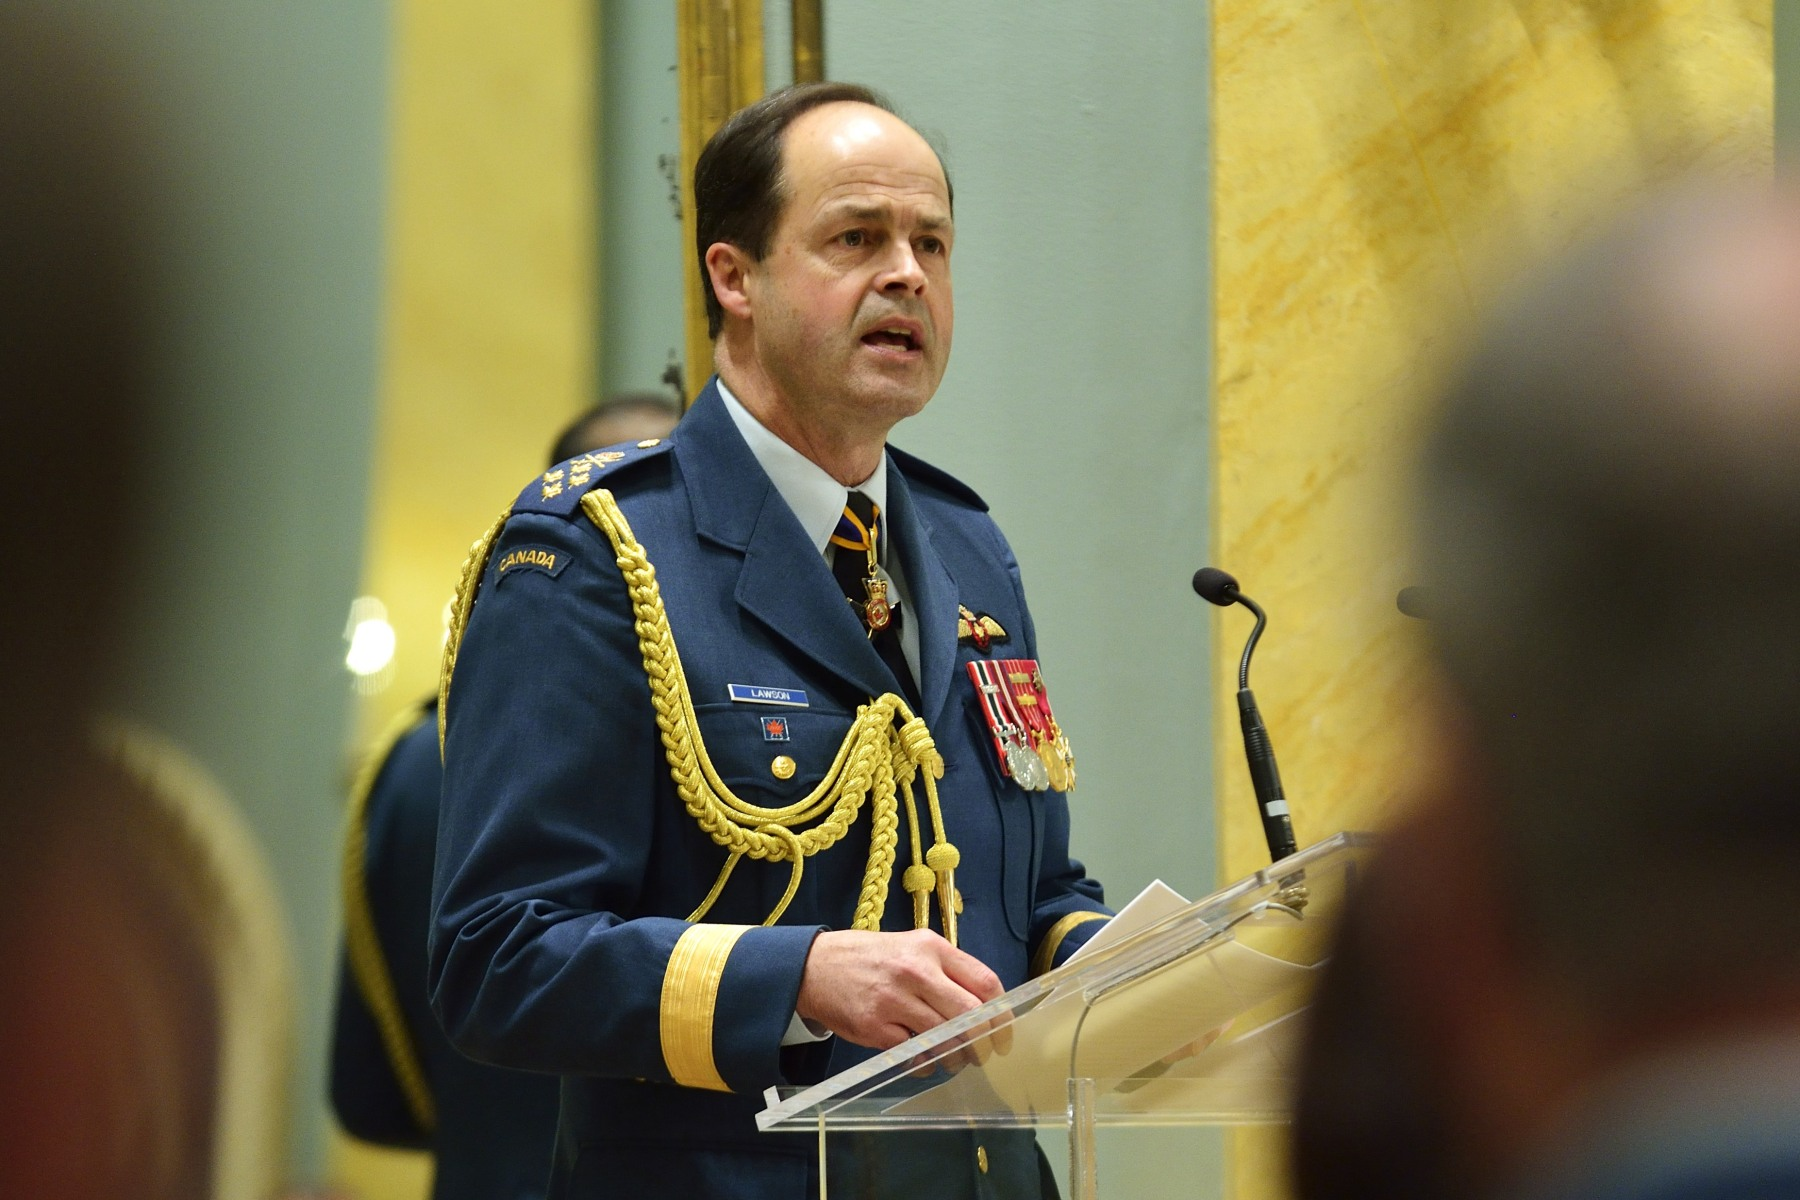 General Thomas J. Lawson, Chief of the Defence Staff, also spoke during this ceremony.